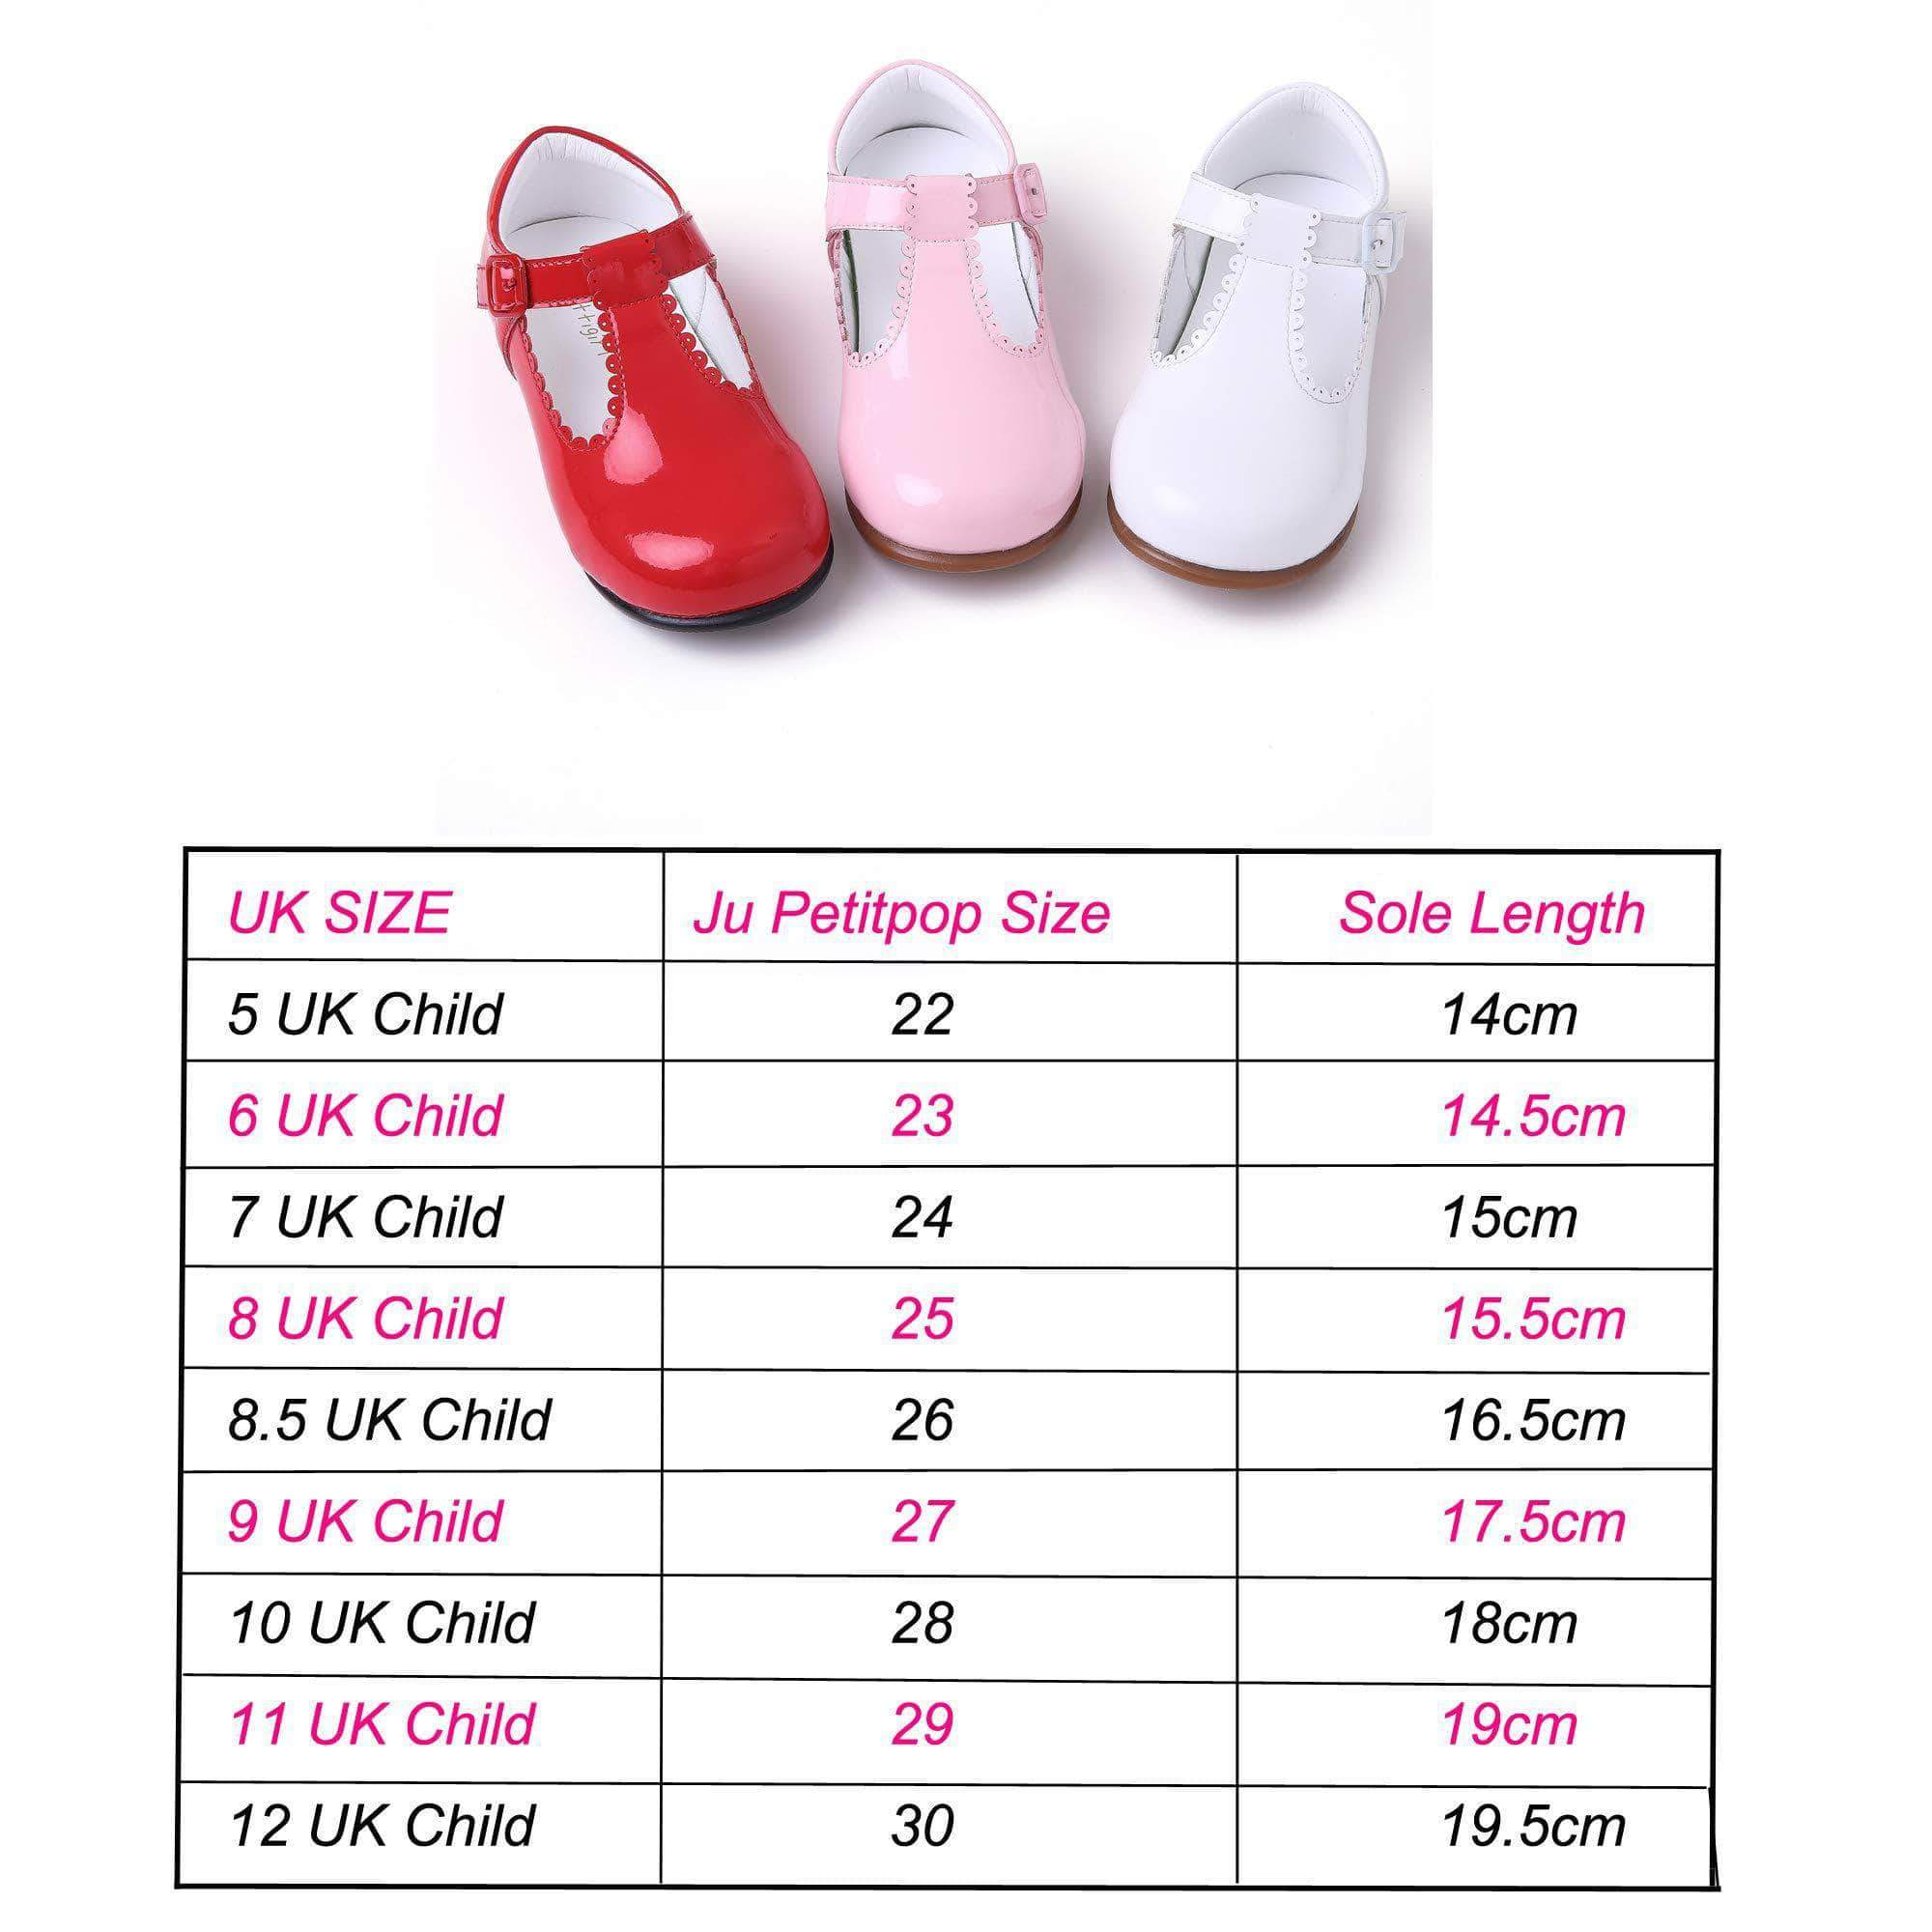 Amazon Ju petitpop Lajinirr Girls Mary Janes Zapatos de Microfibra , 27 EU , Rojo